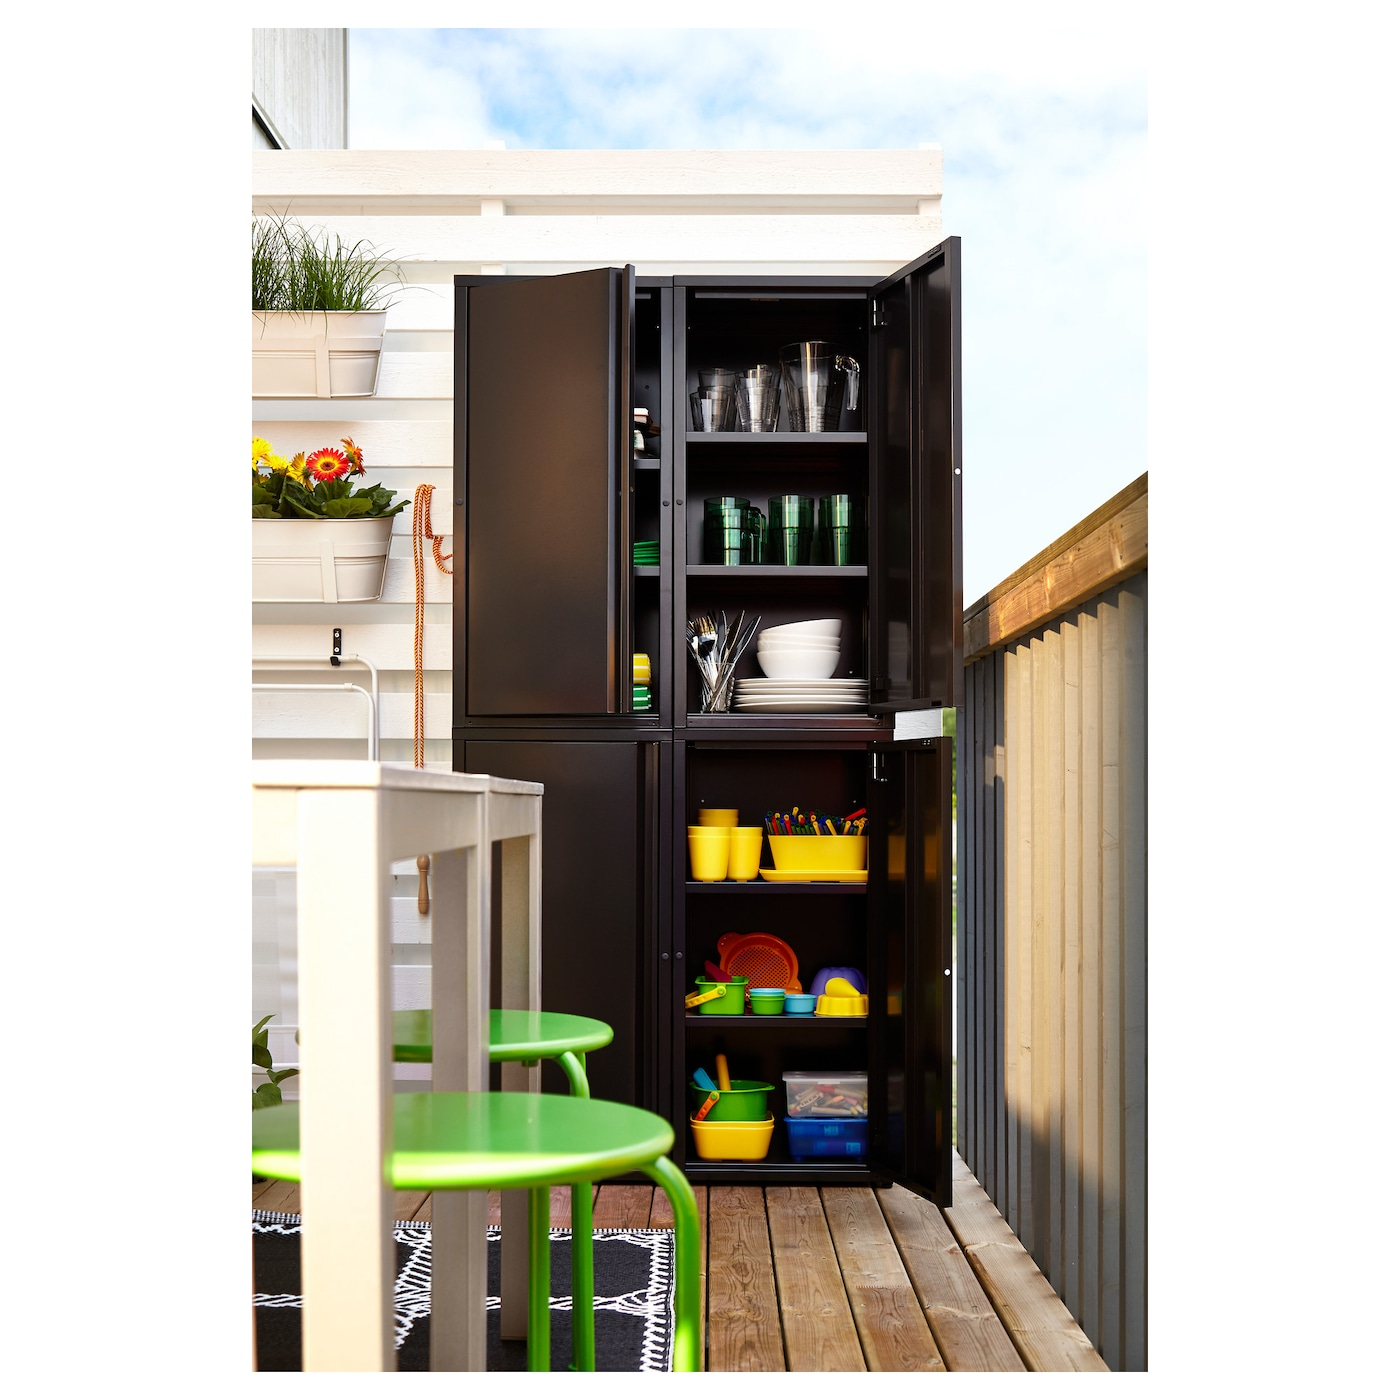 josef l ment rangement int ext rieur gris fonc 40x35x86 cm ikea. Black Bedroom Furniture Sets. Home Design Ideas